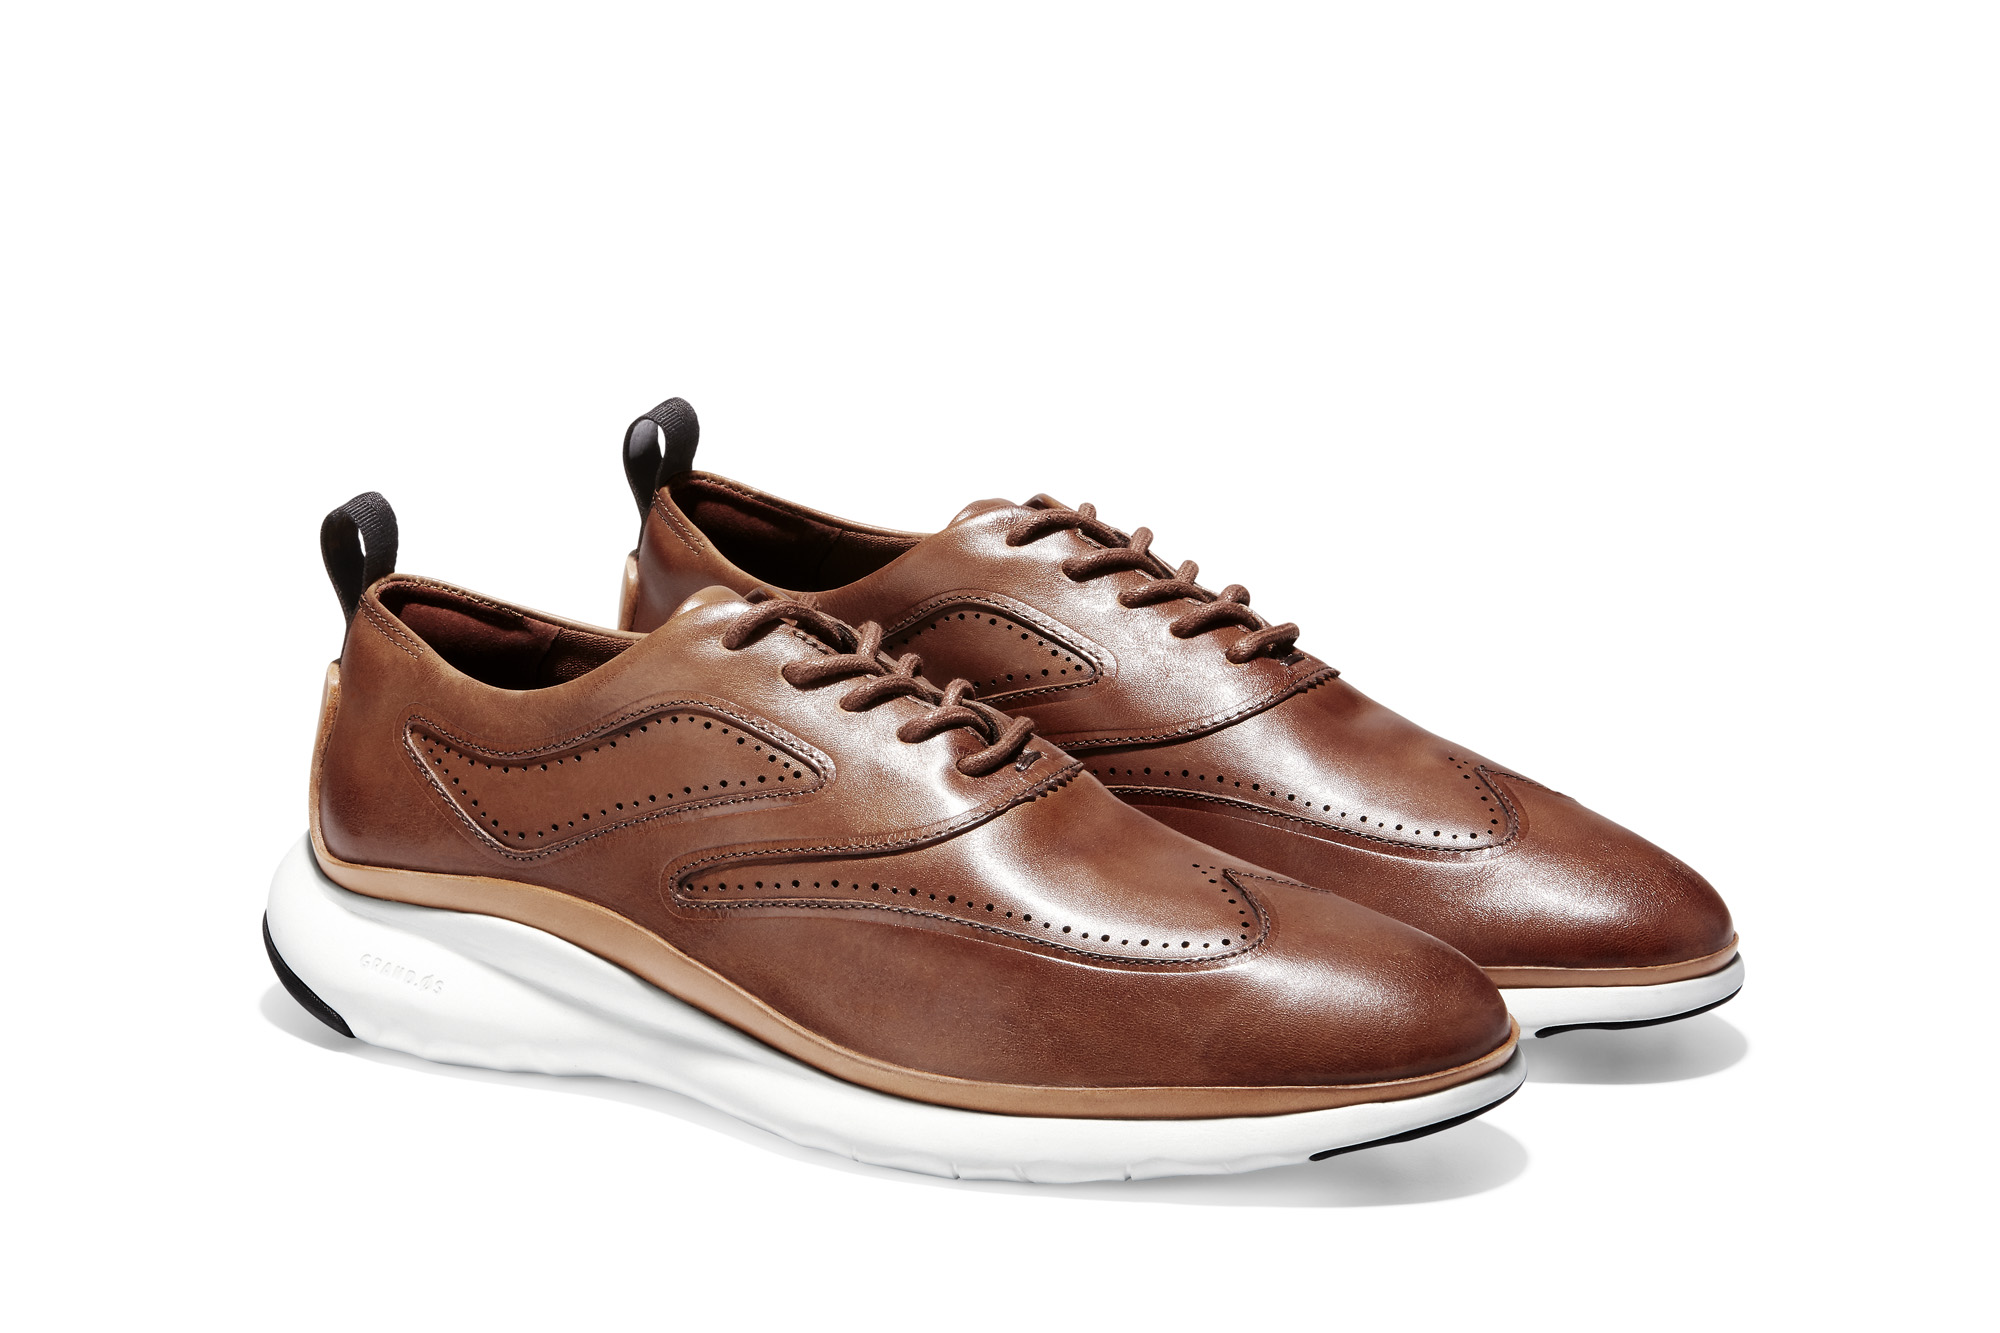 3ZEROGRAND WINGTIP OXFORD CH BRITISH TAN LEATHER-NATURAL LEATHER CHASSIS-IVORY_C28396 3_V1